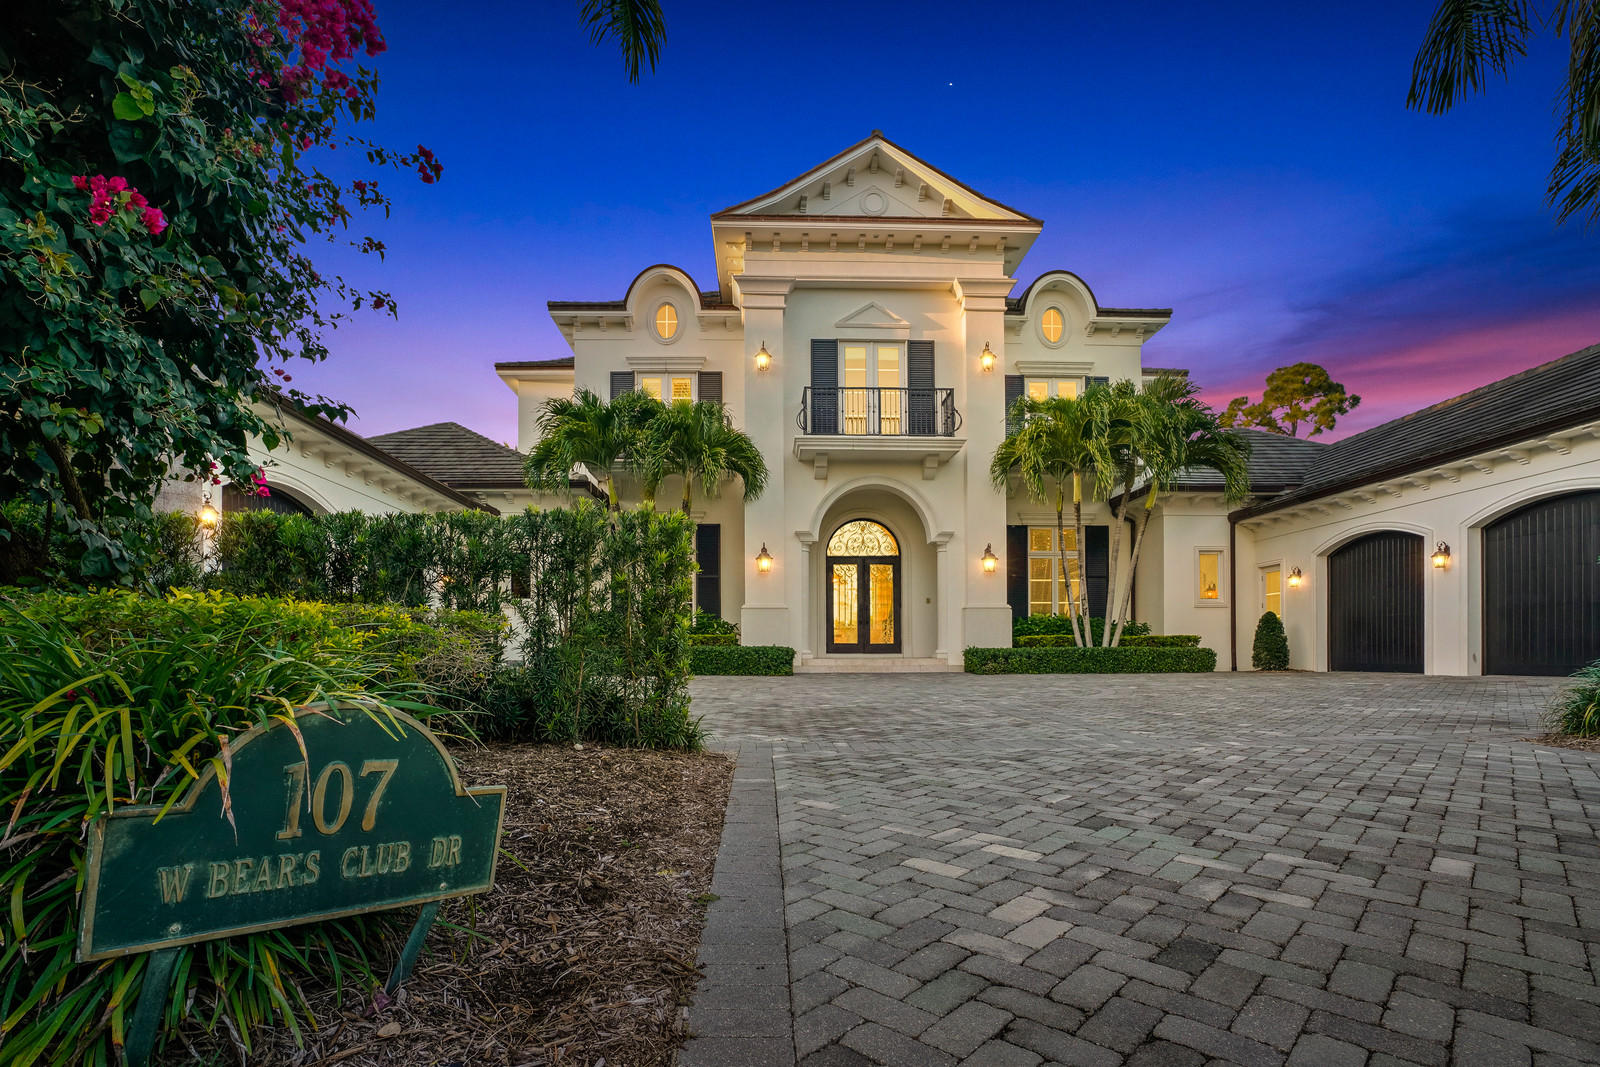 New Home for sale at 107 Bears Club Drive in Jupiter